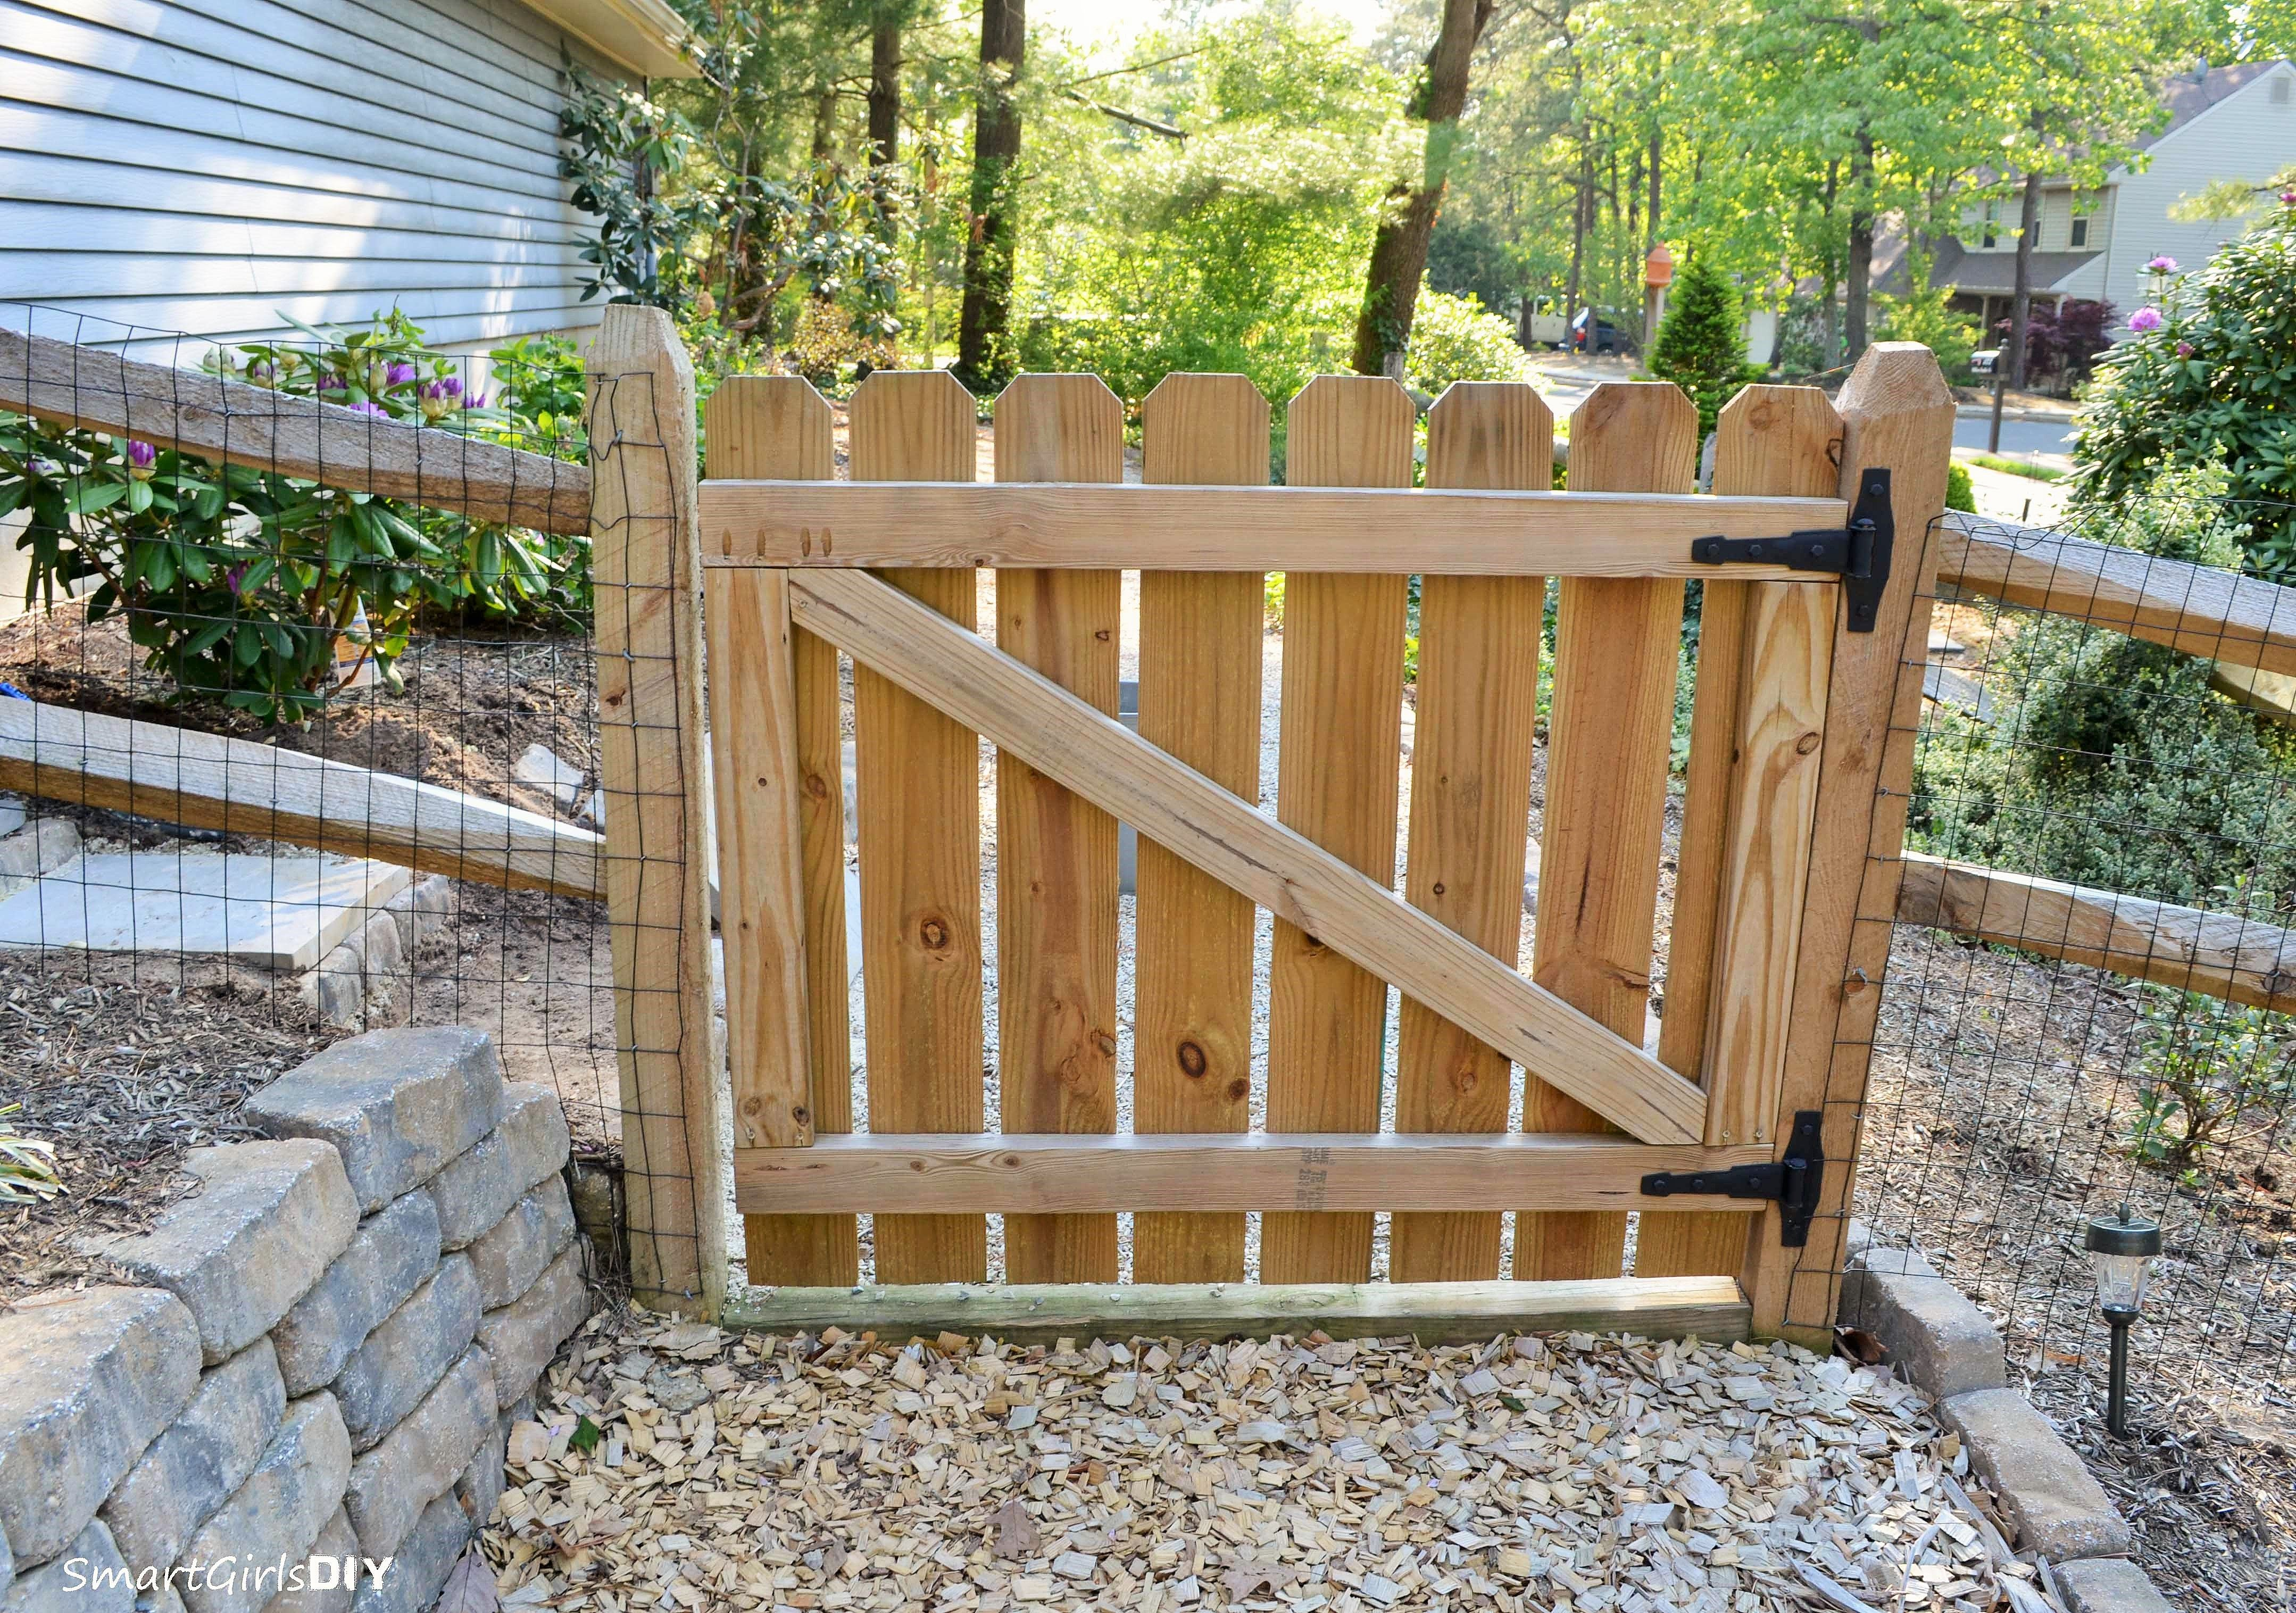 The Fence Gate